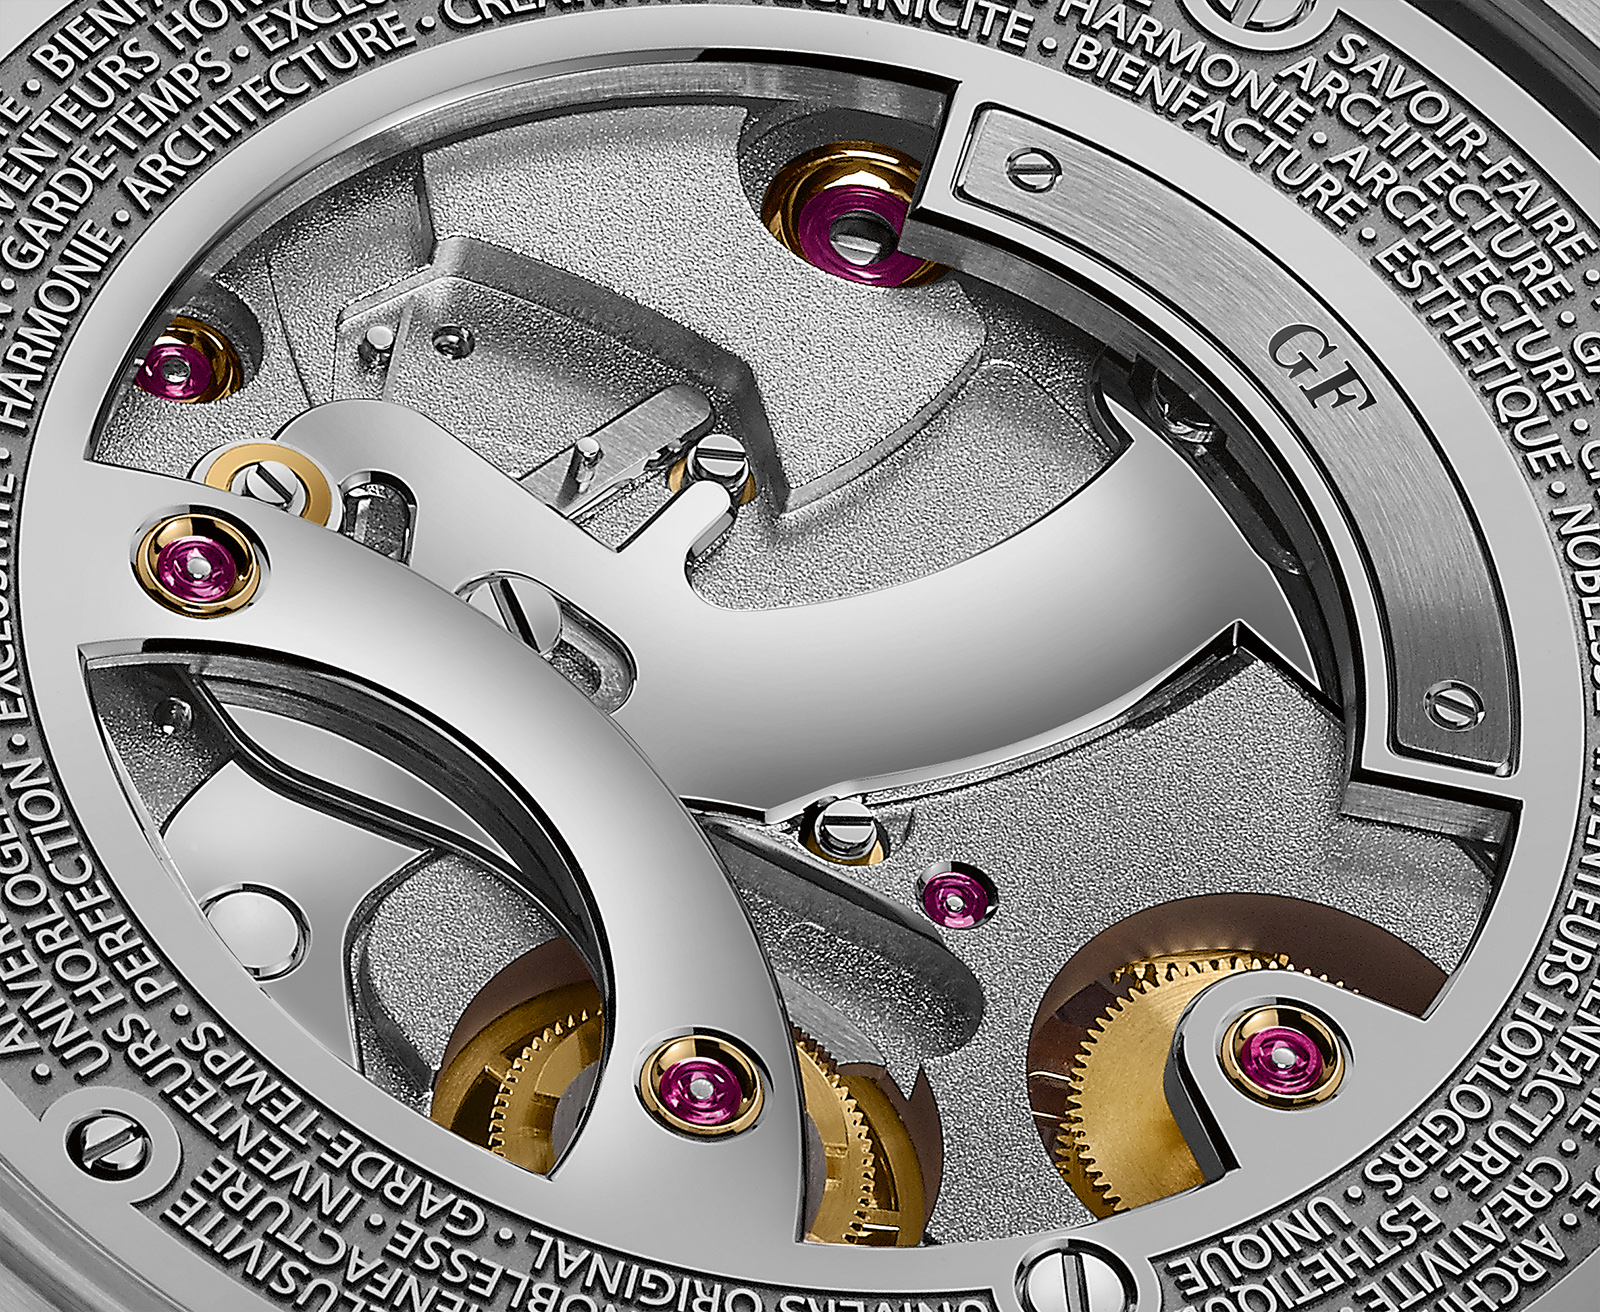 SIHH 2018: Greubel Forsey Unveils Constant Force with Deadbeat